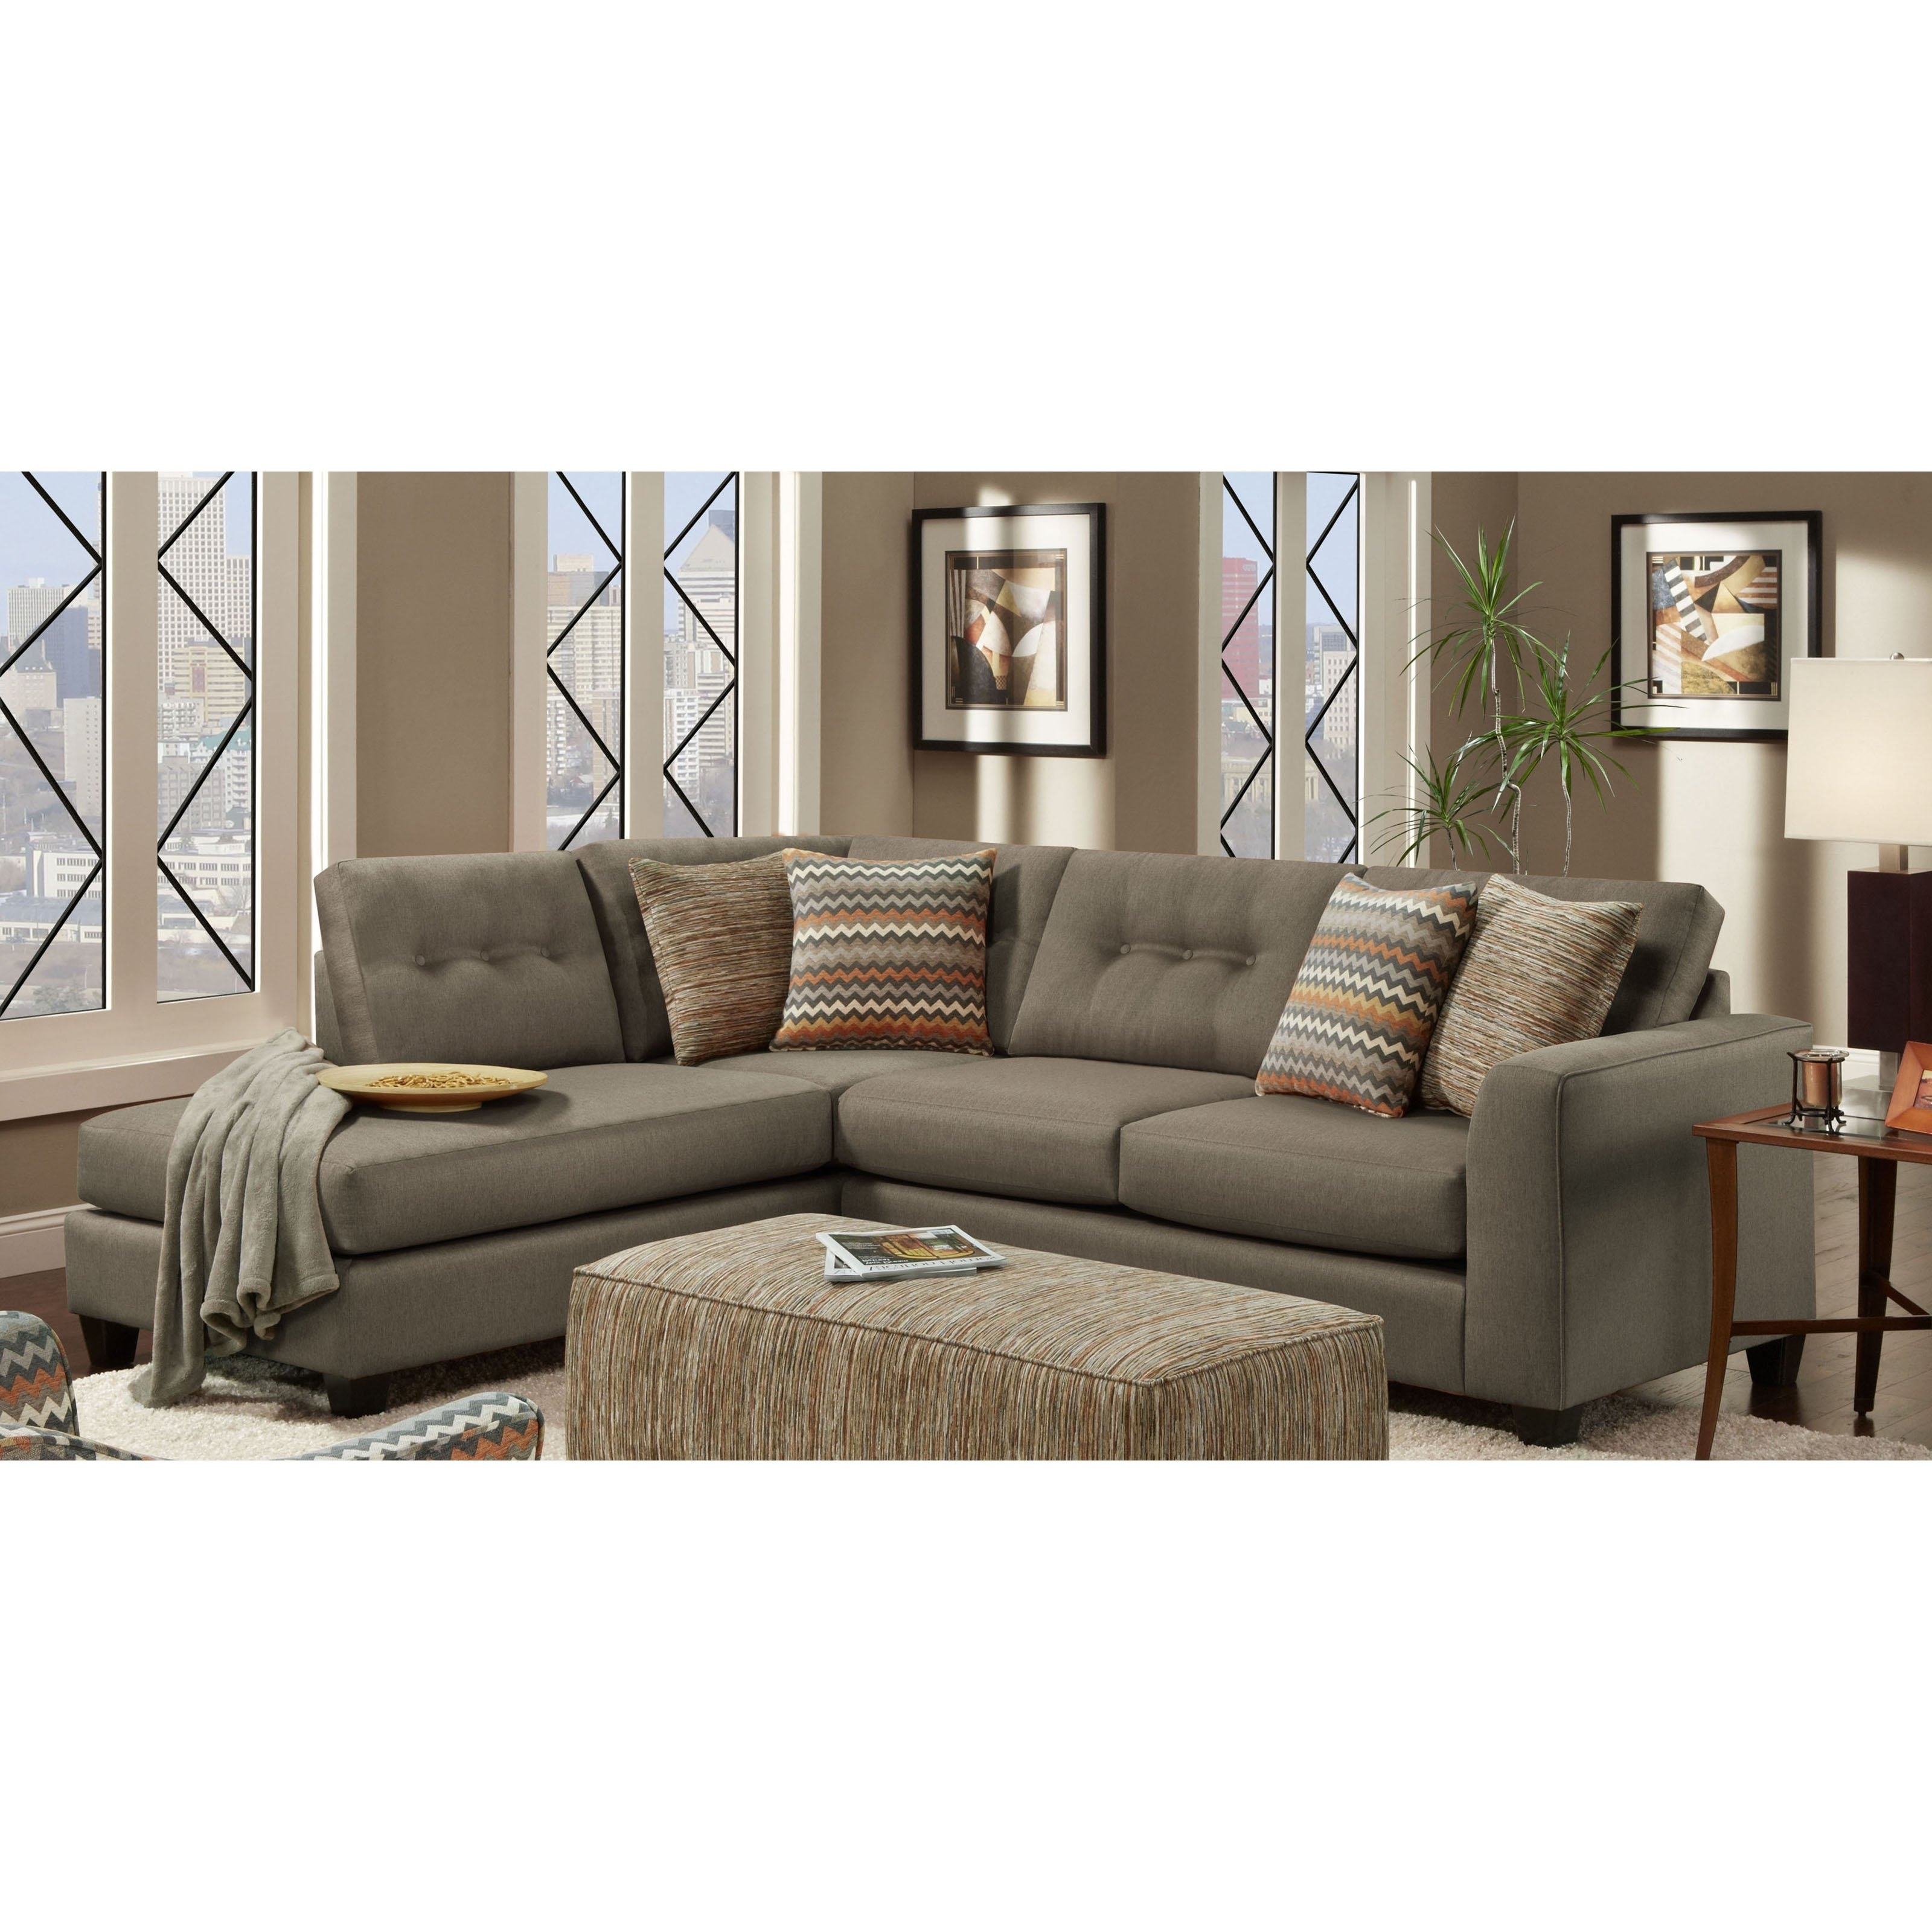 Chelsea Home Furniture Phoenix Sectional Sofa – Walmart With Well Known Phoenix Sectional Sofas (View 4 of 20)